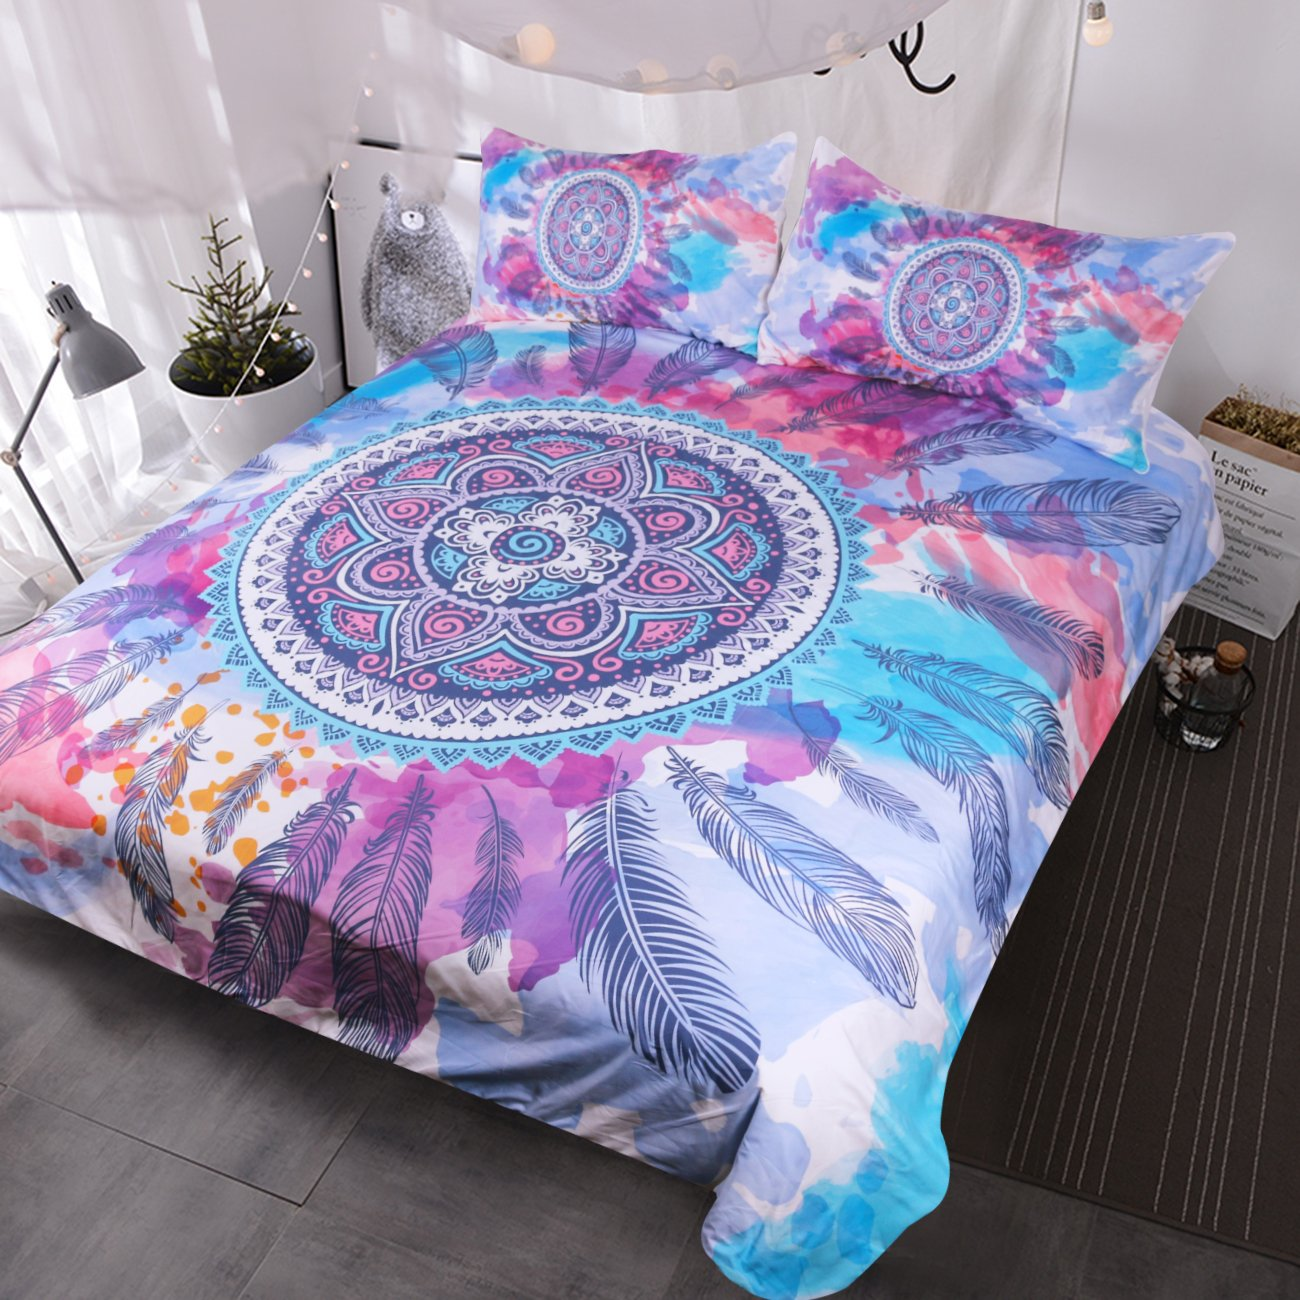 Blessliving Psychedelic Bedding Mandala Feathers Bed Set Pink Blue Purple Colored Hippy Duvet Cover Bedclothes (Full)